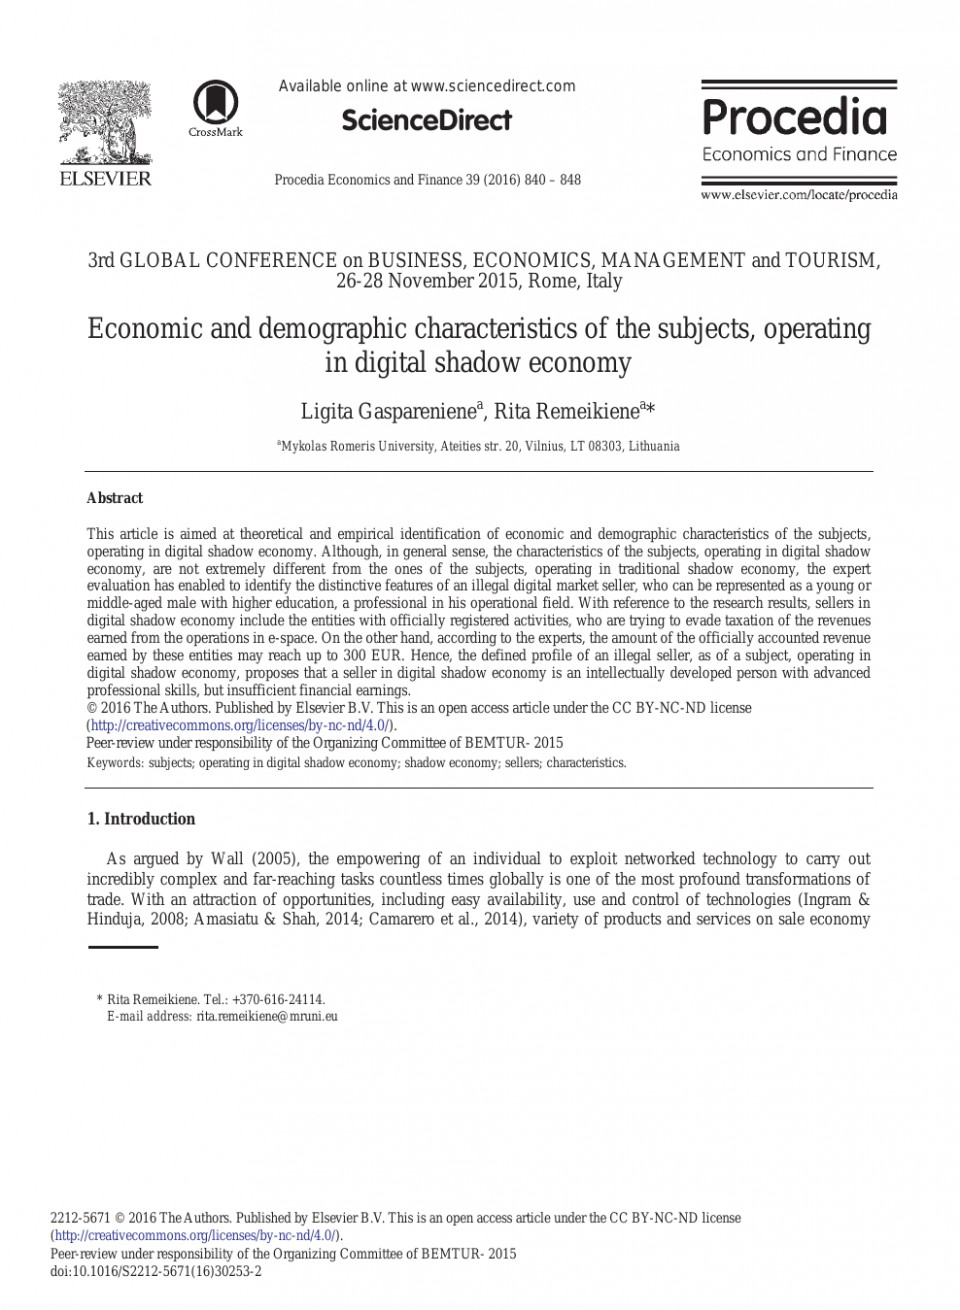 005 Research Paper Remarkable Economy Managerial Economics Topics Sharing Cashless 960